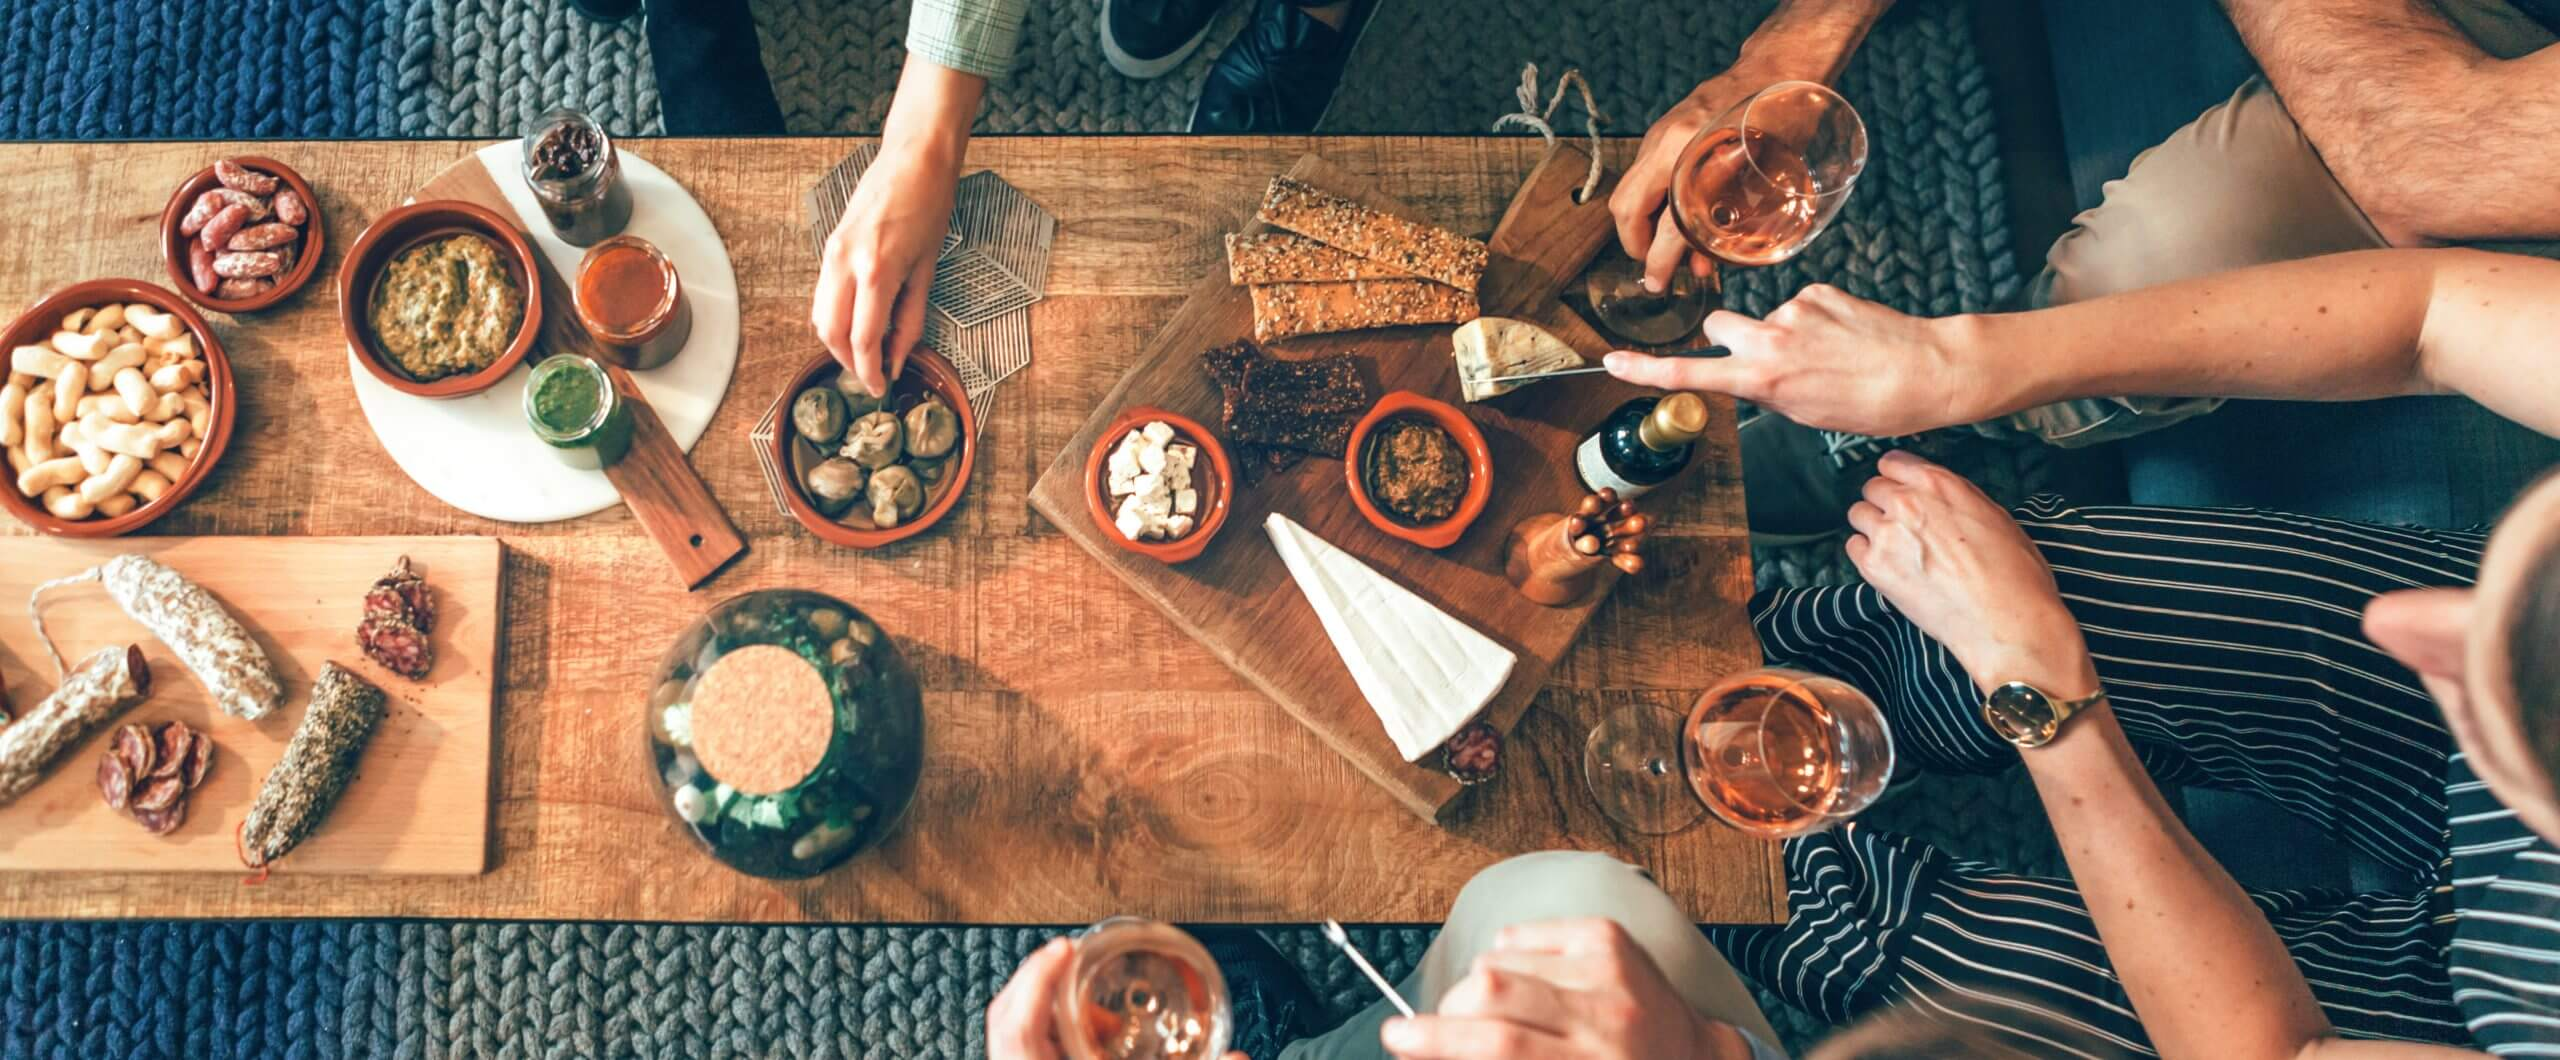 A gathering of friends sitting around a coffee table sharing small eats and sipping wine.